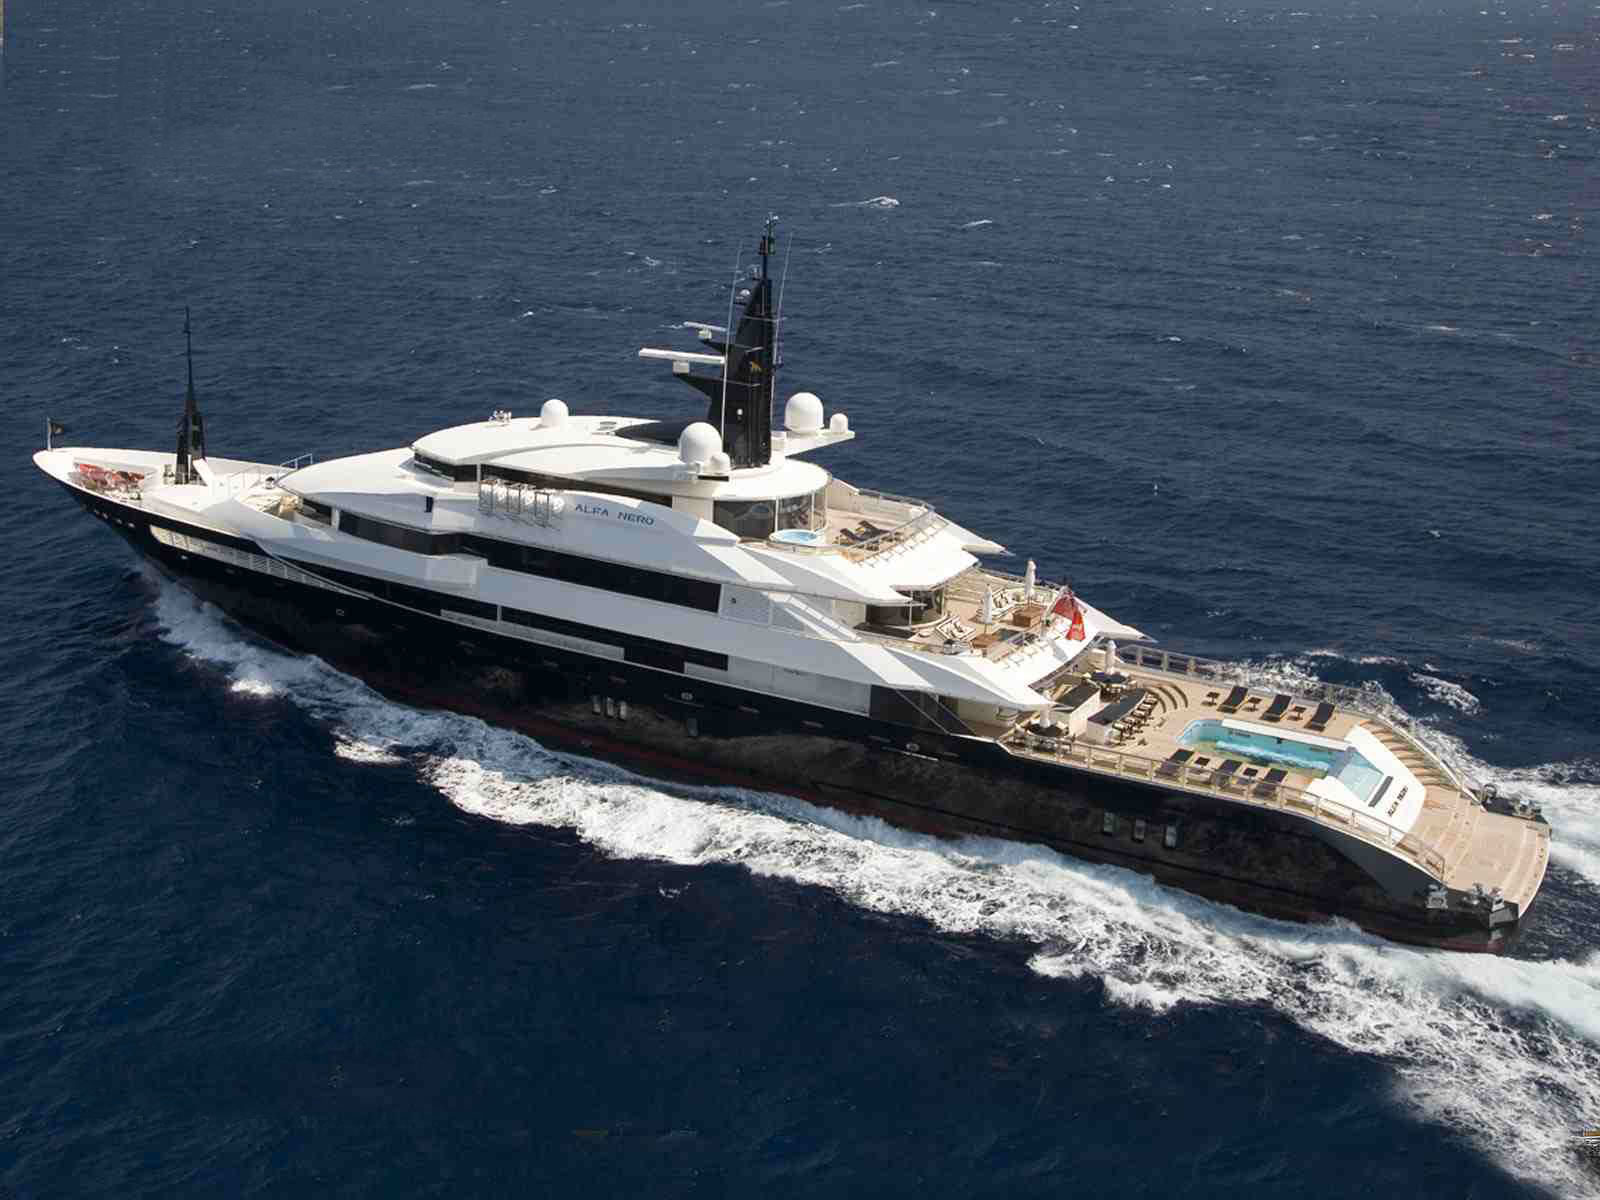 world u0026 39 s most expensive superyacht charter - steven spielberg u0026 39 s new seven seas yacht